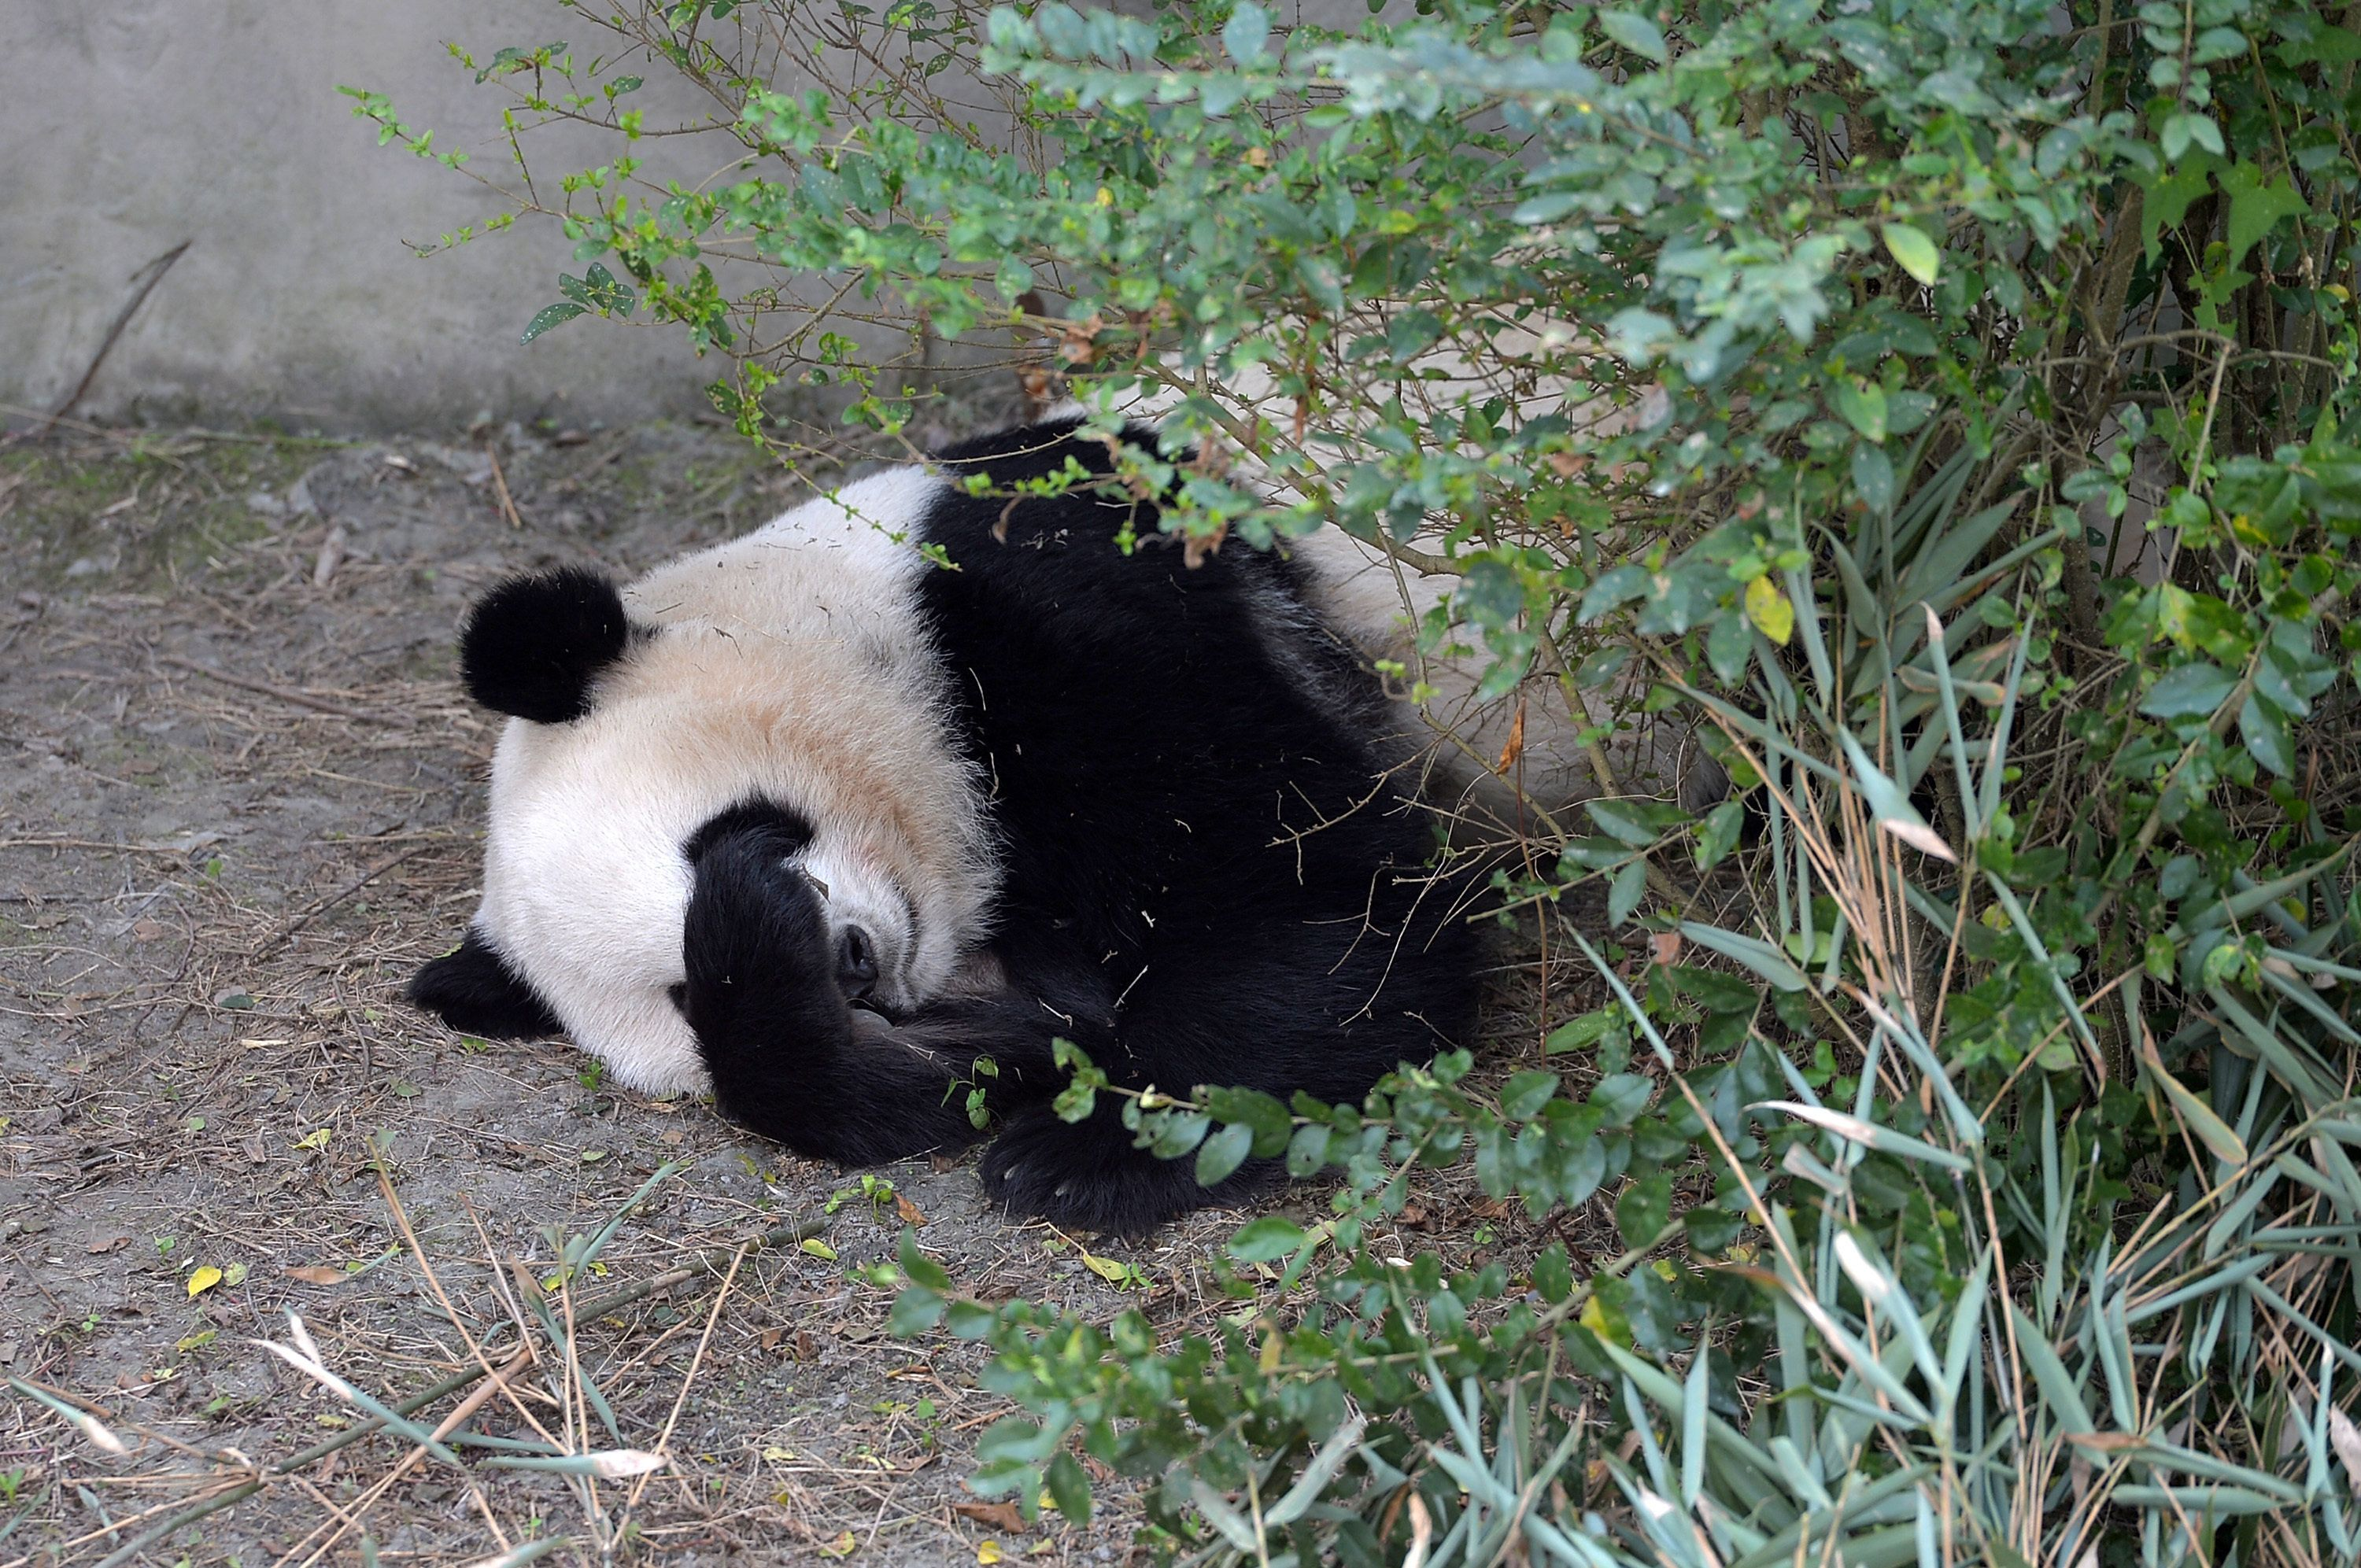 CHENGDU, CHINA - NOVEMBER 16: Giant panda Mei Lun sleeps at Chengdu Research Base of Giant Panda Breeding on November 16, 2016 in Chengdu, Sichuan Province of China. American born female giant panda twins Mei Lun and Mei Huan came back on Nov 5 and lived in the Chengdu Research Base of Giant Panda Breeding. The twins were born at Atlanta Zoo in 2013 by giant panda Lun Lun who arrived in the US with male panda Yang Yang in 1999. (Photo by Wang Qin/Chengdu Economic Daily/VCG via Getty Images)